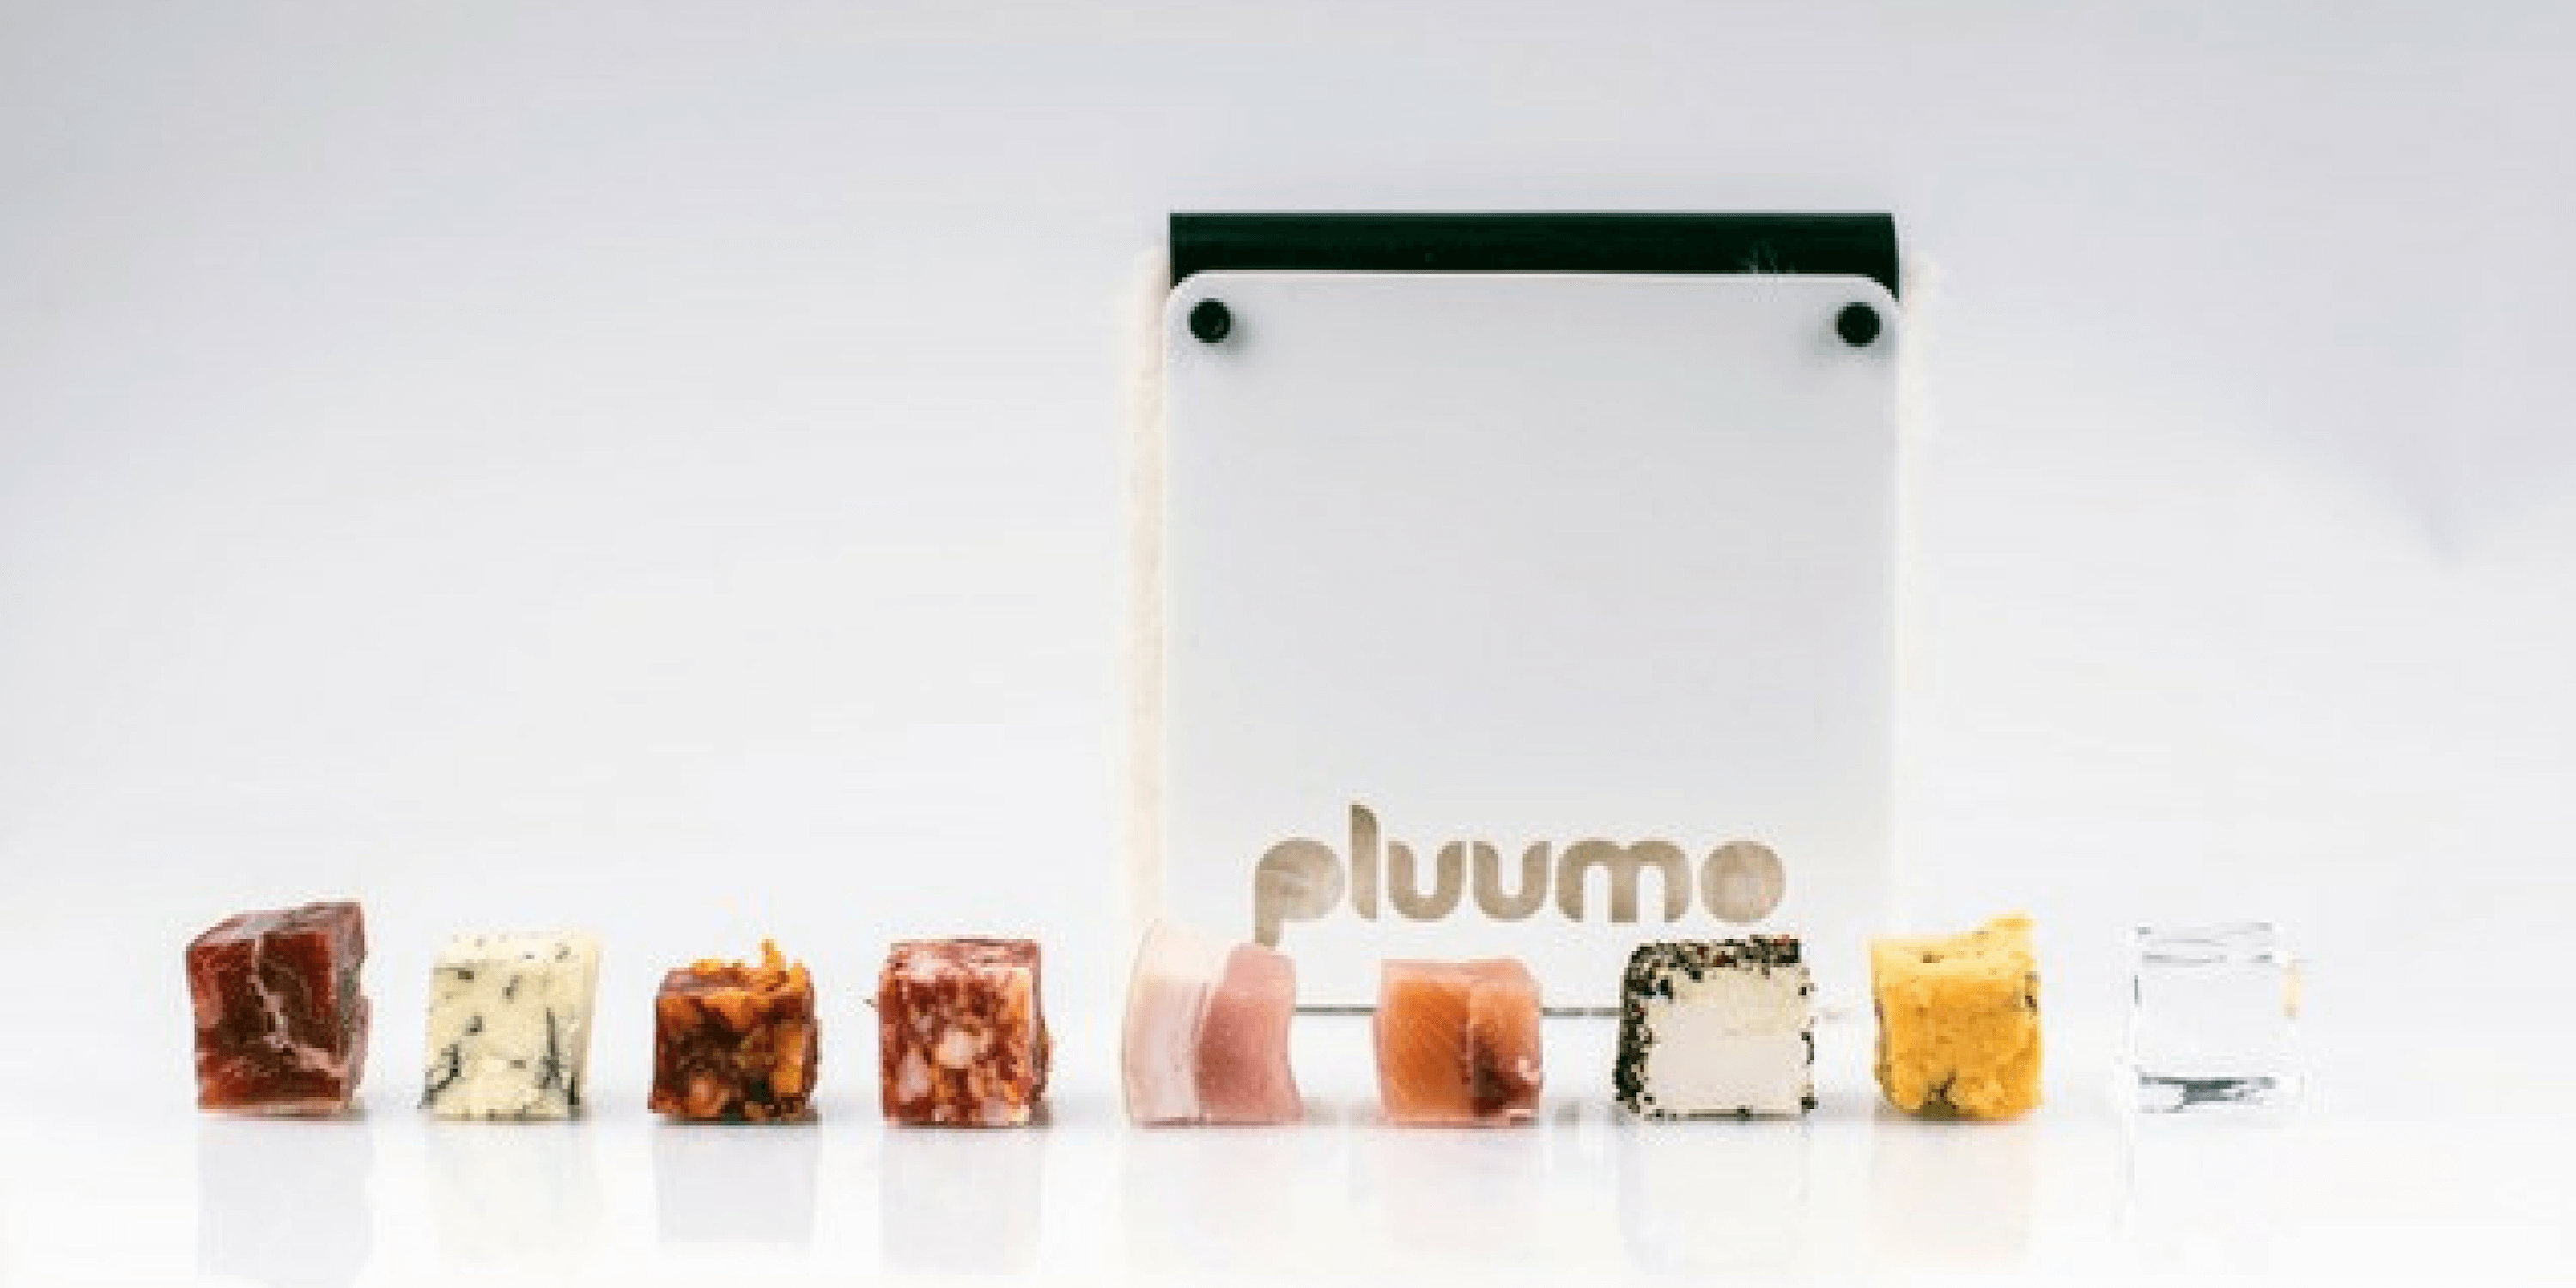 Food products that can be packed in pluumo packaging